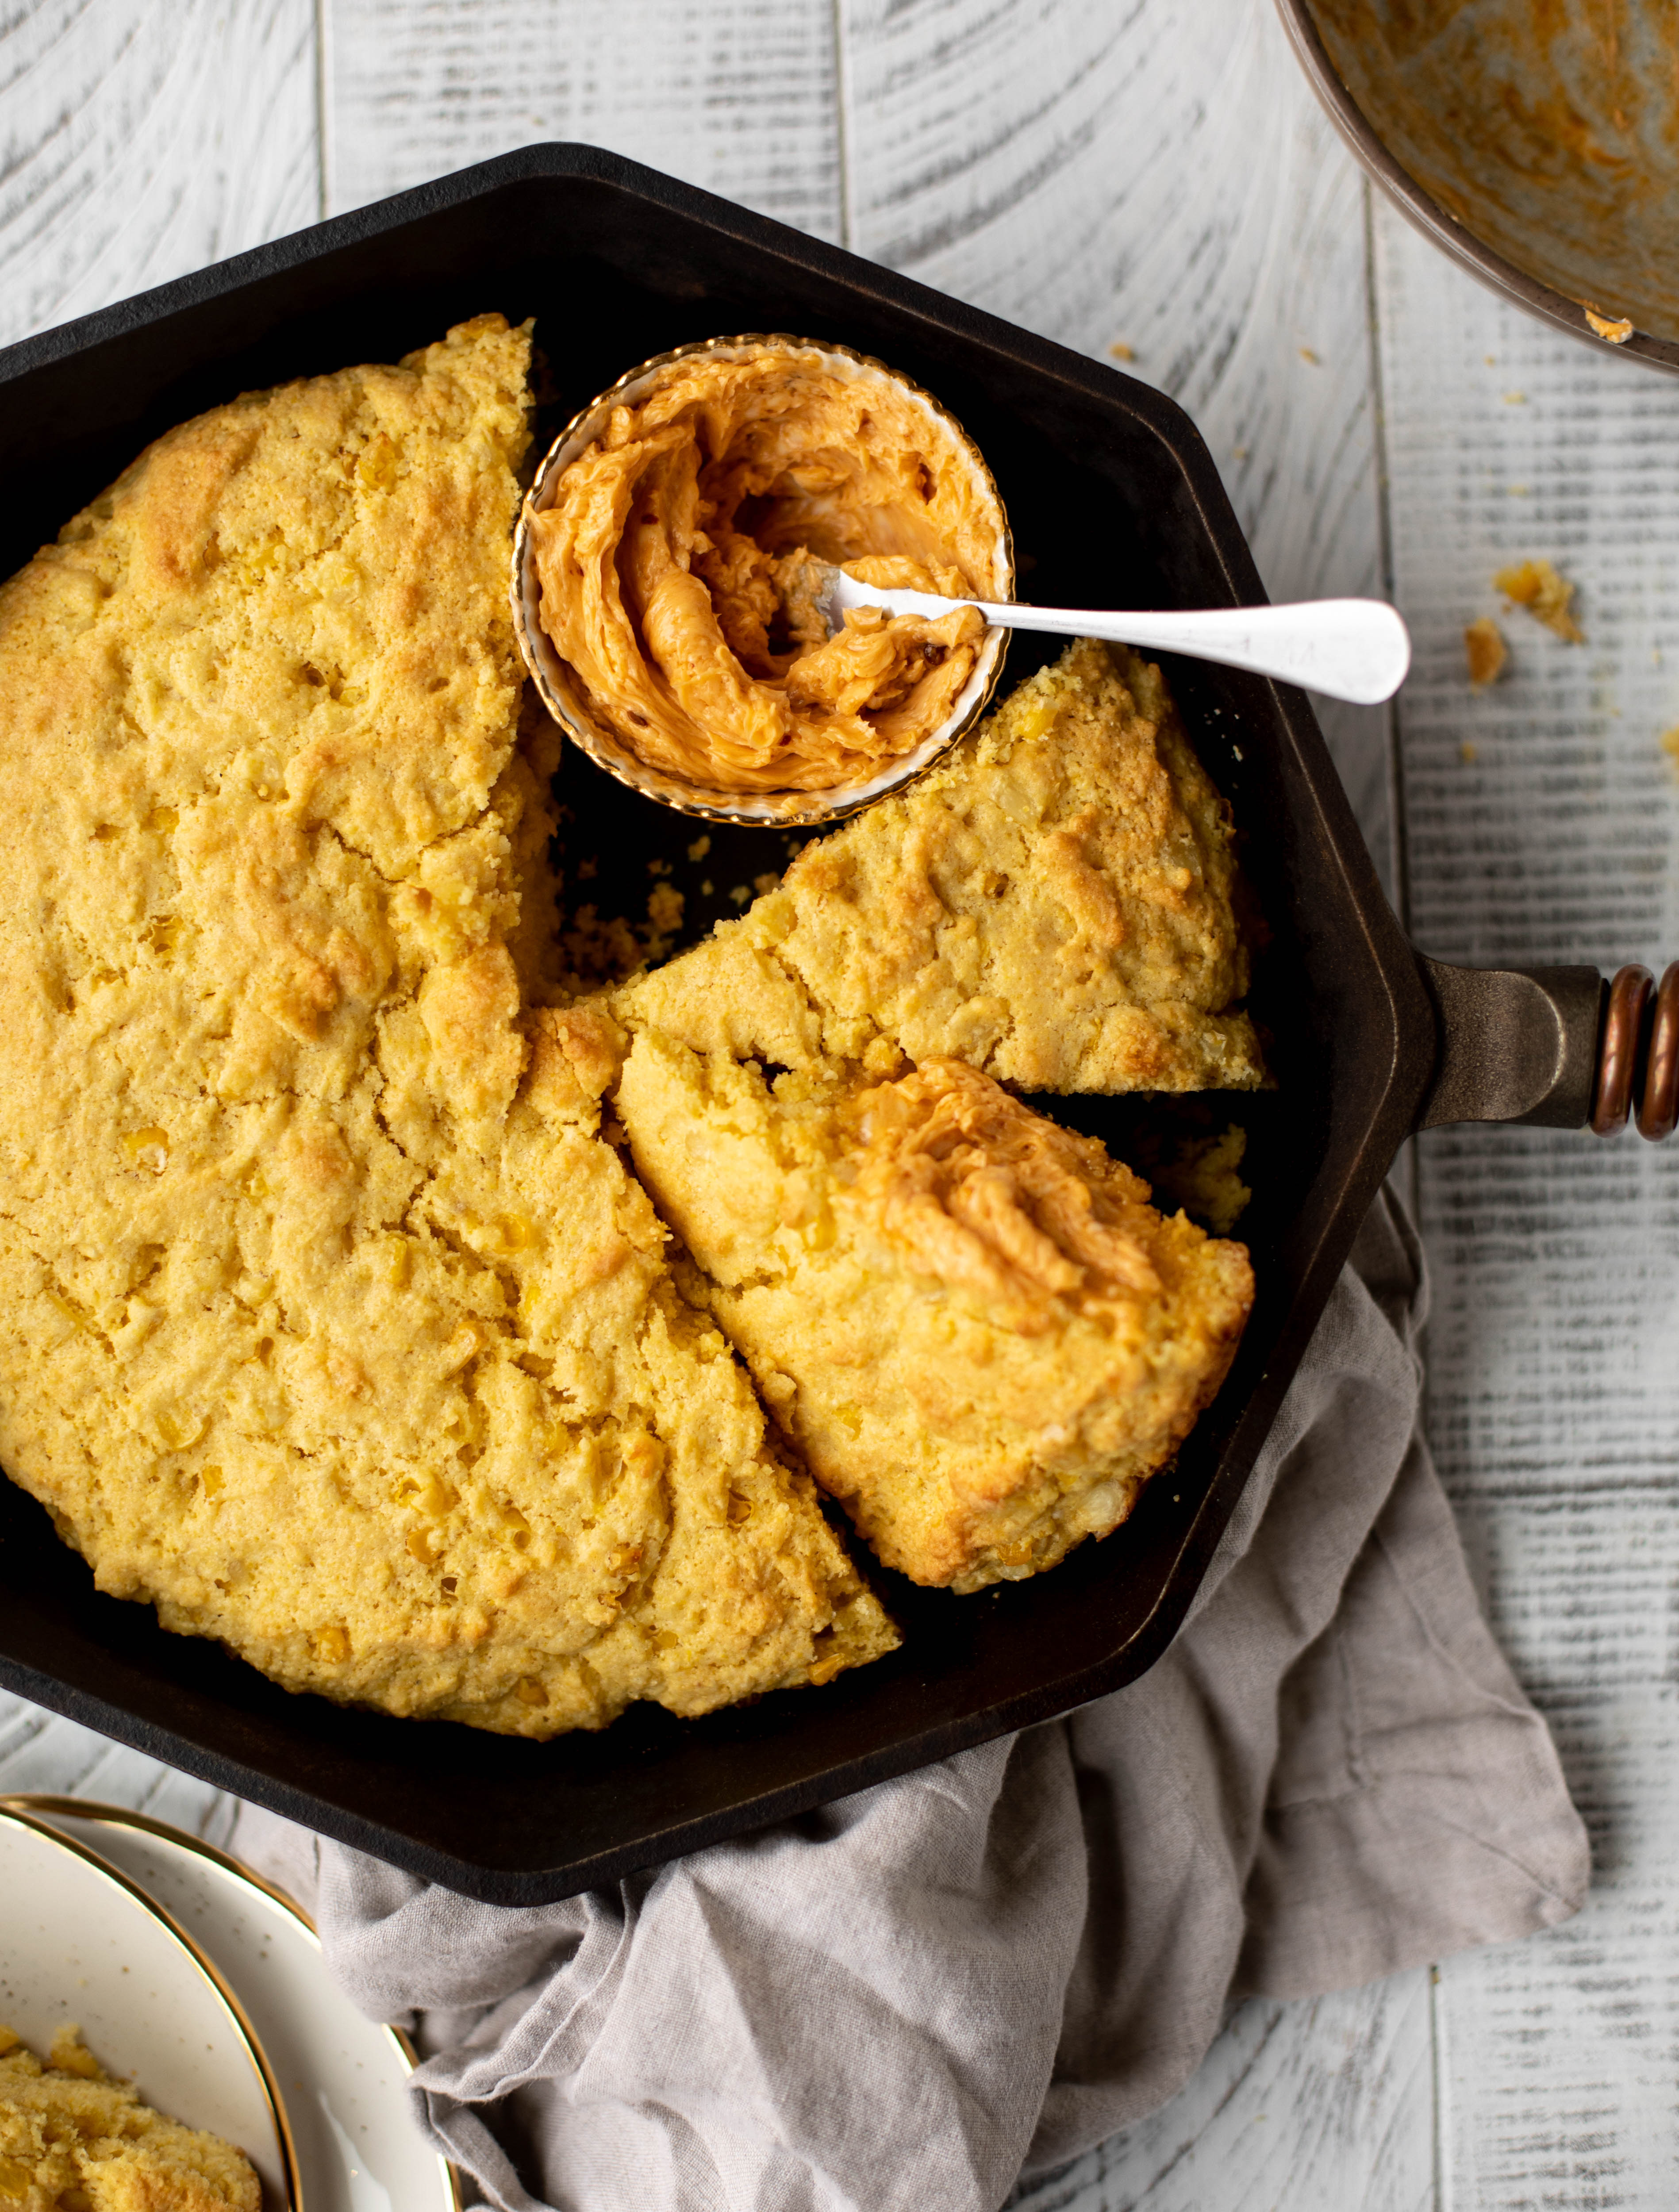 This skillet cornbread is so fluffy and delicious! Serve it hot from the oven with chipotle honey butter. It makes a great appetizer or side dish.